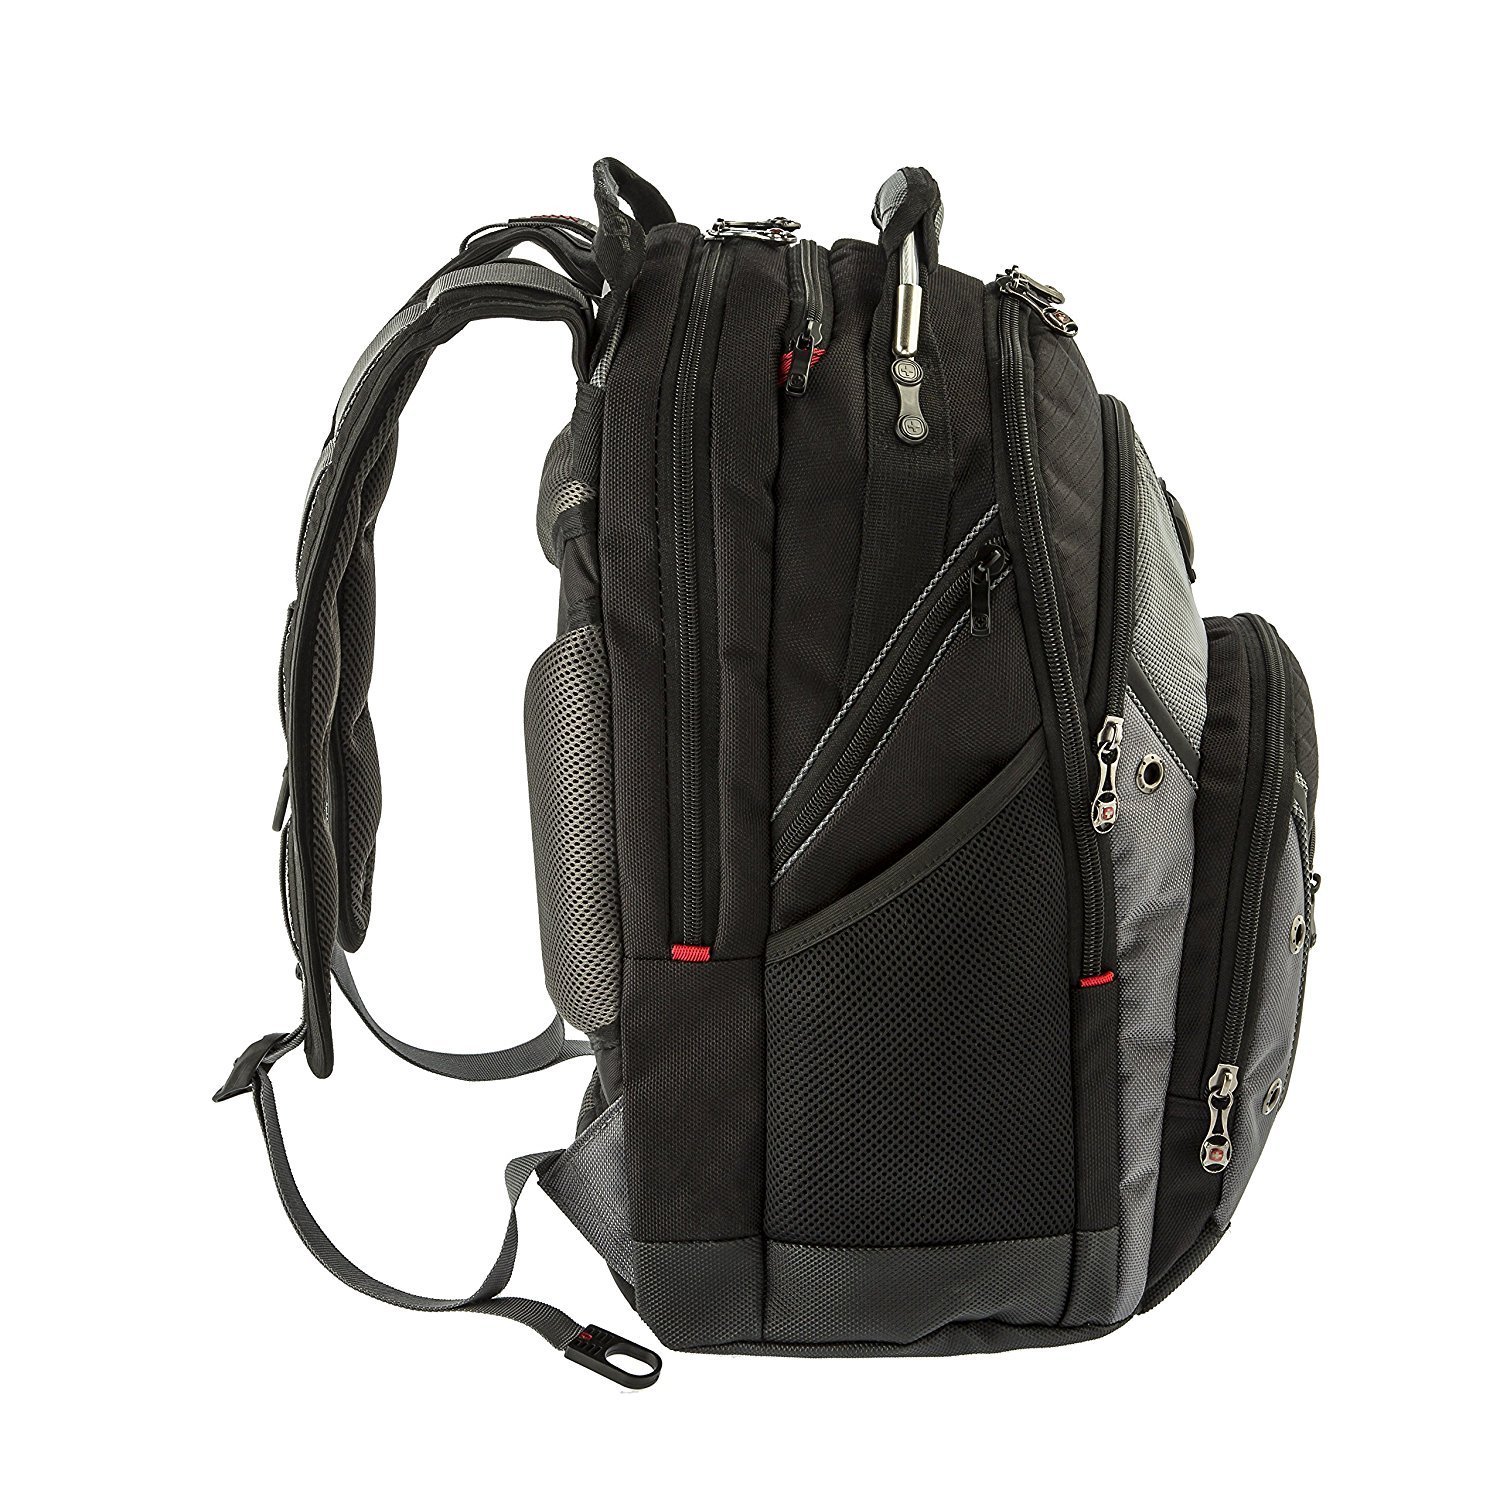 Wenger Synergy Backpack, Gray (GA-7305-14F00) by Wenger